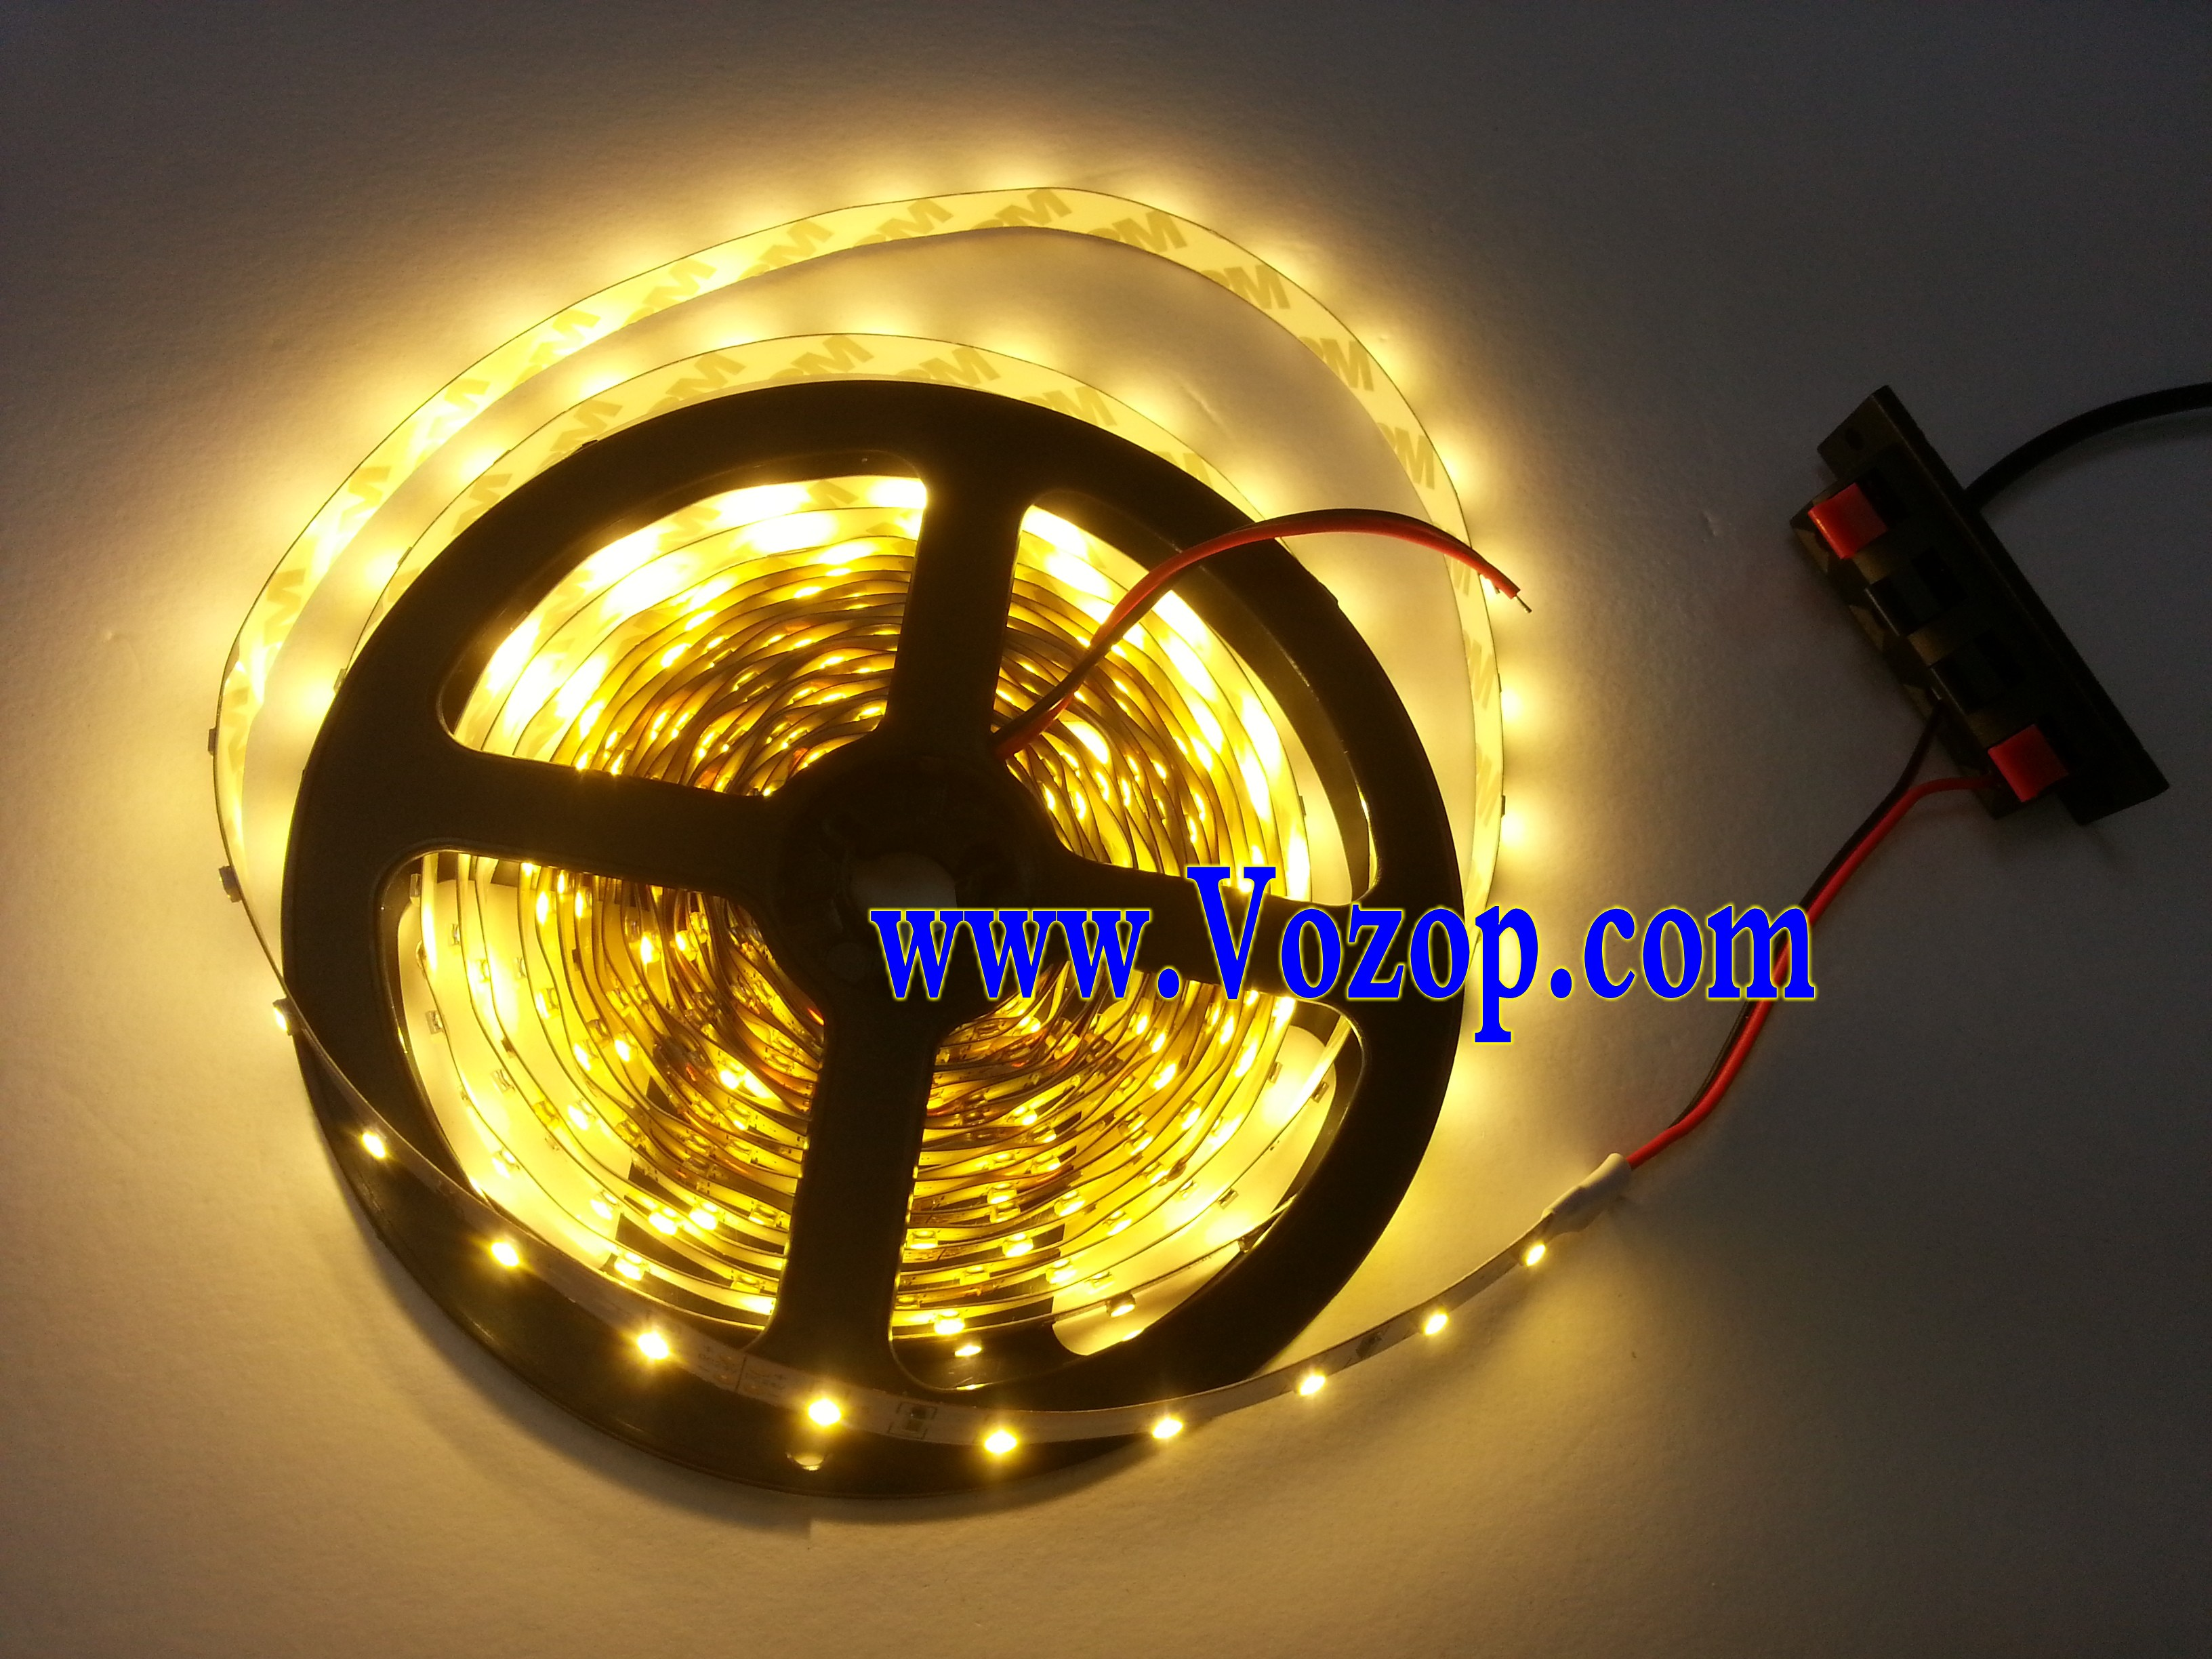 24V_3528_LED_Light_Strip_5M_300_LEDs_Lighting_Tape_light